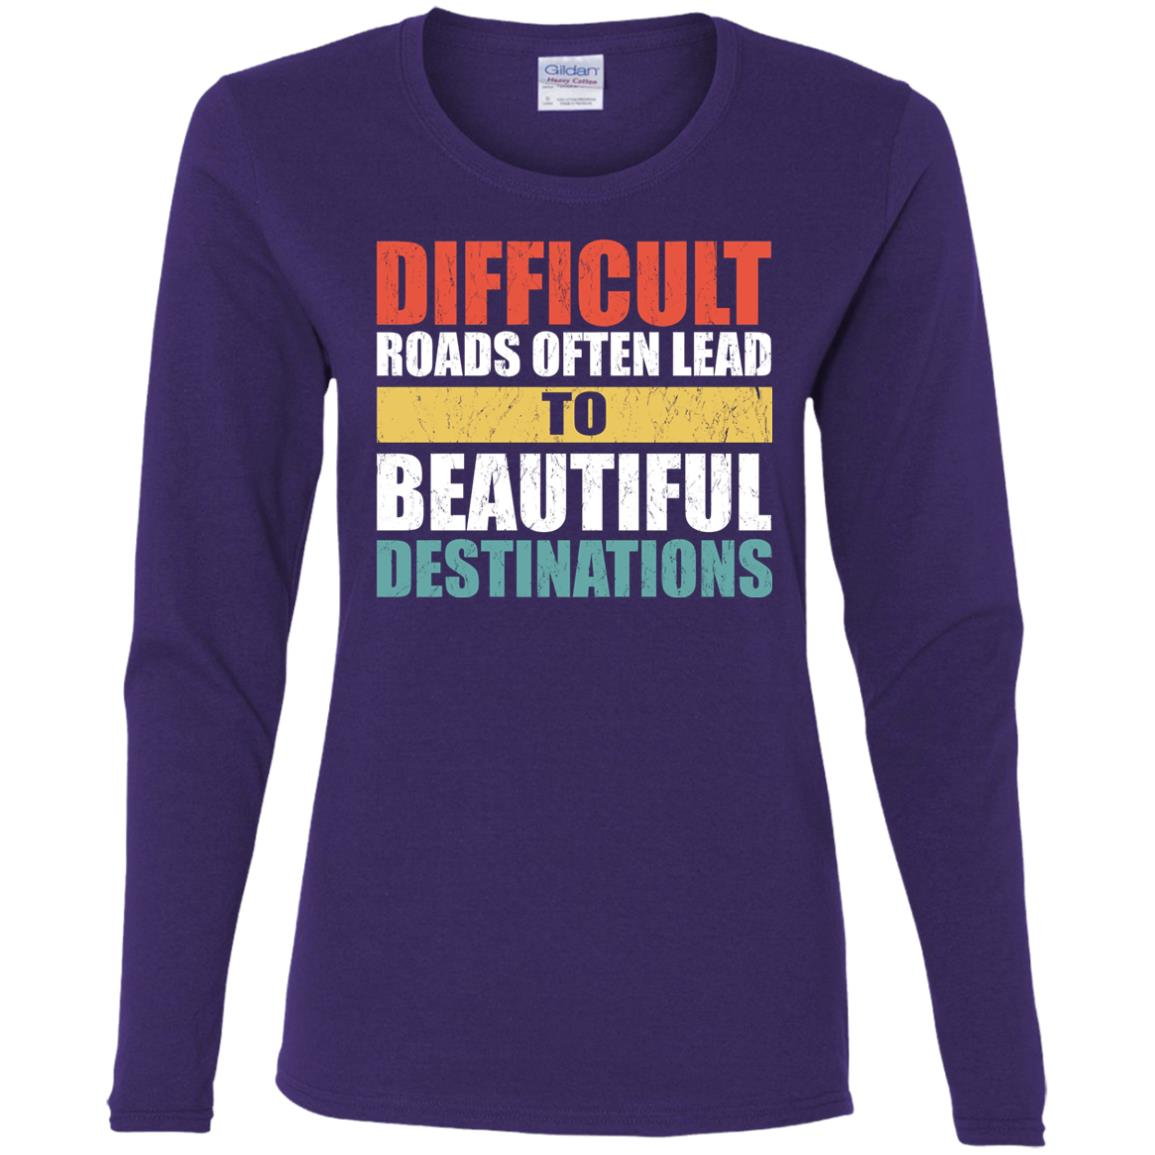 Difficult Roads Often Lead To Beautiful Destinations Women Long Sleeve T-Shirt